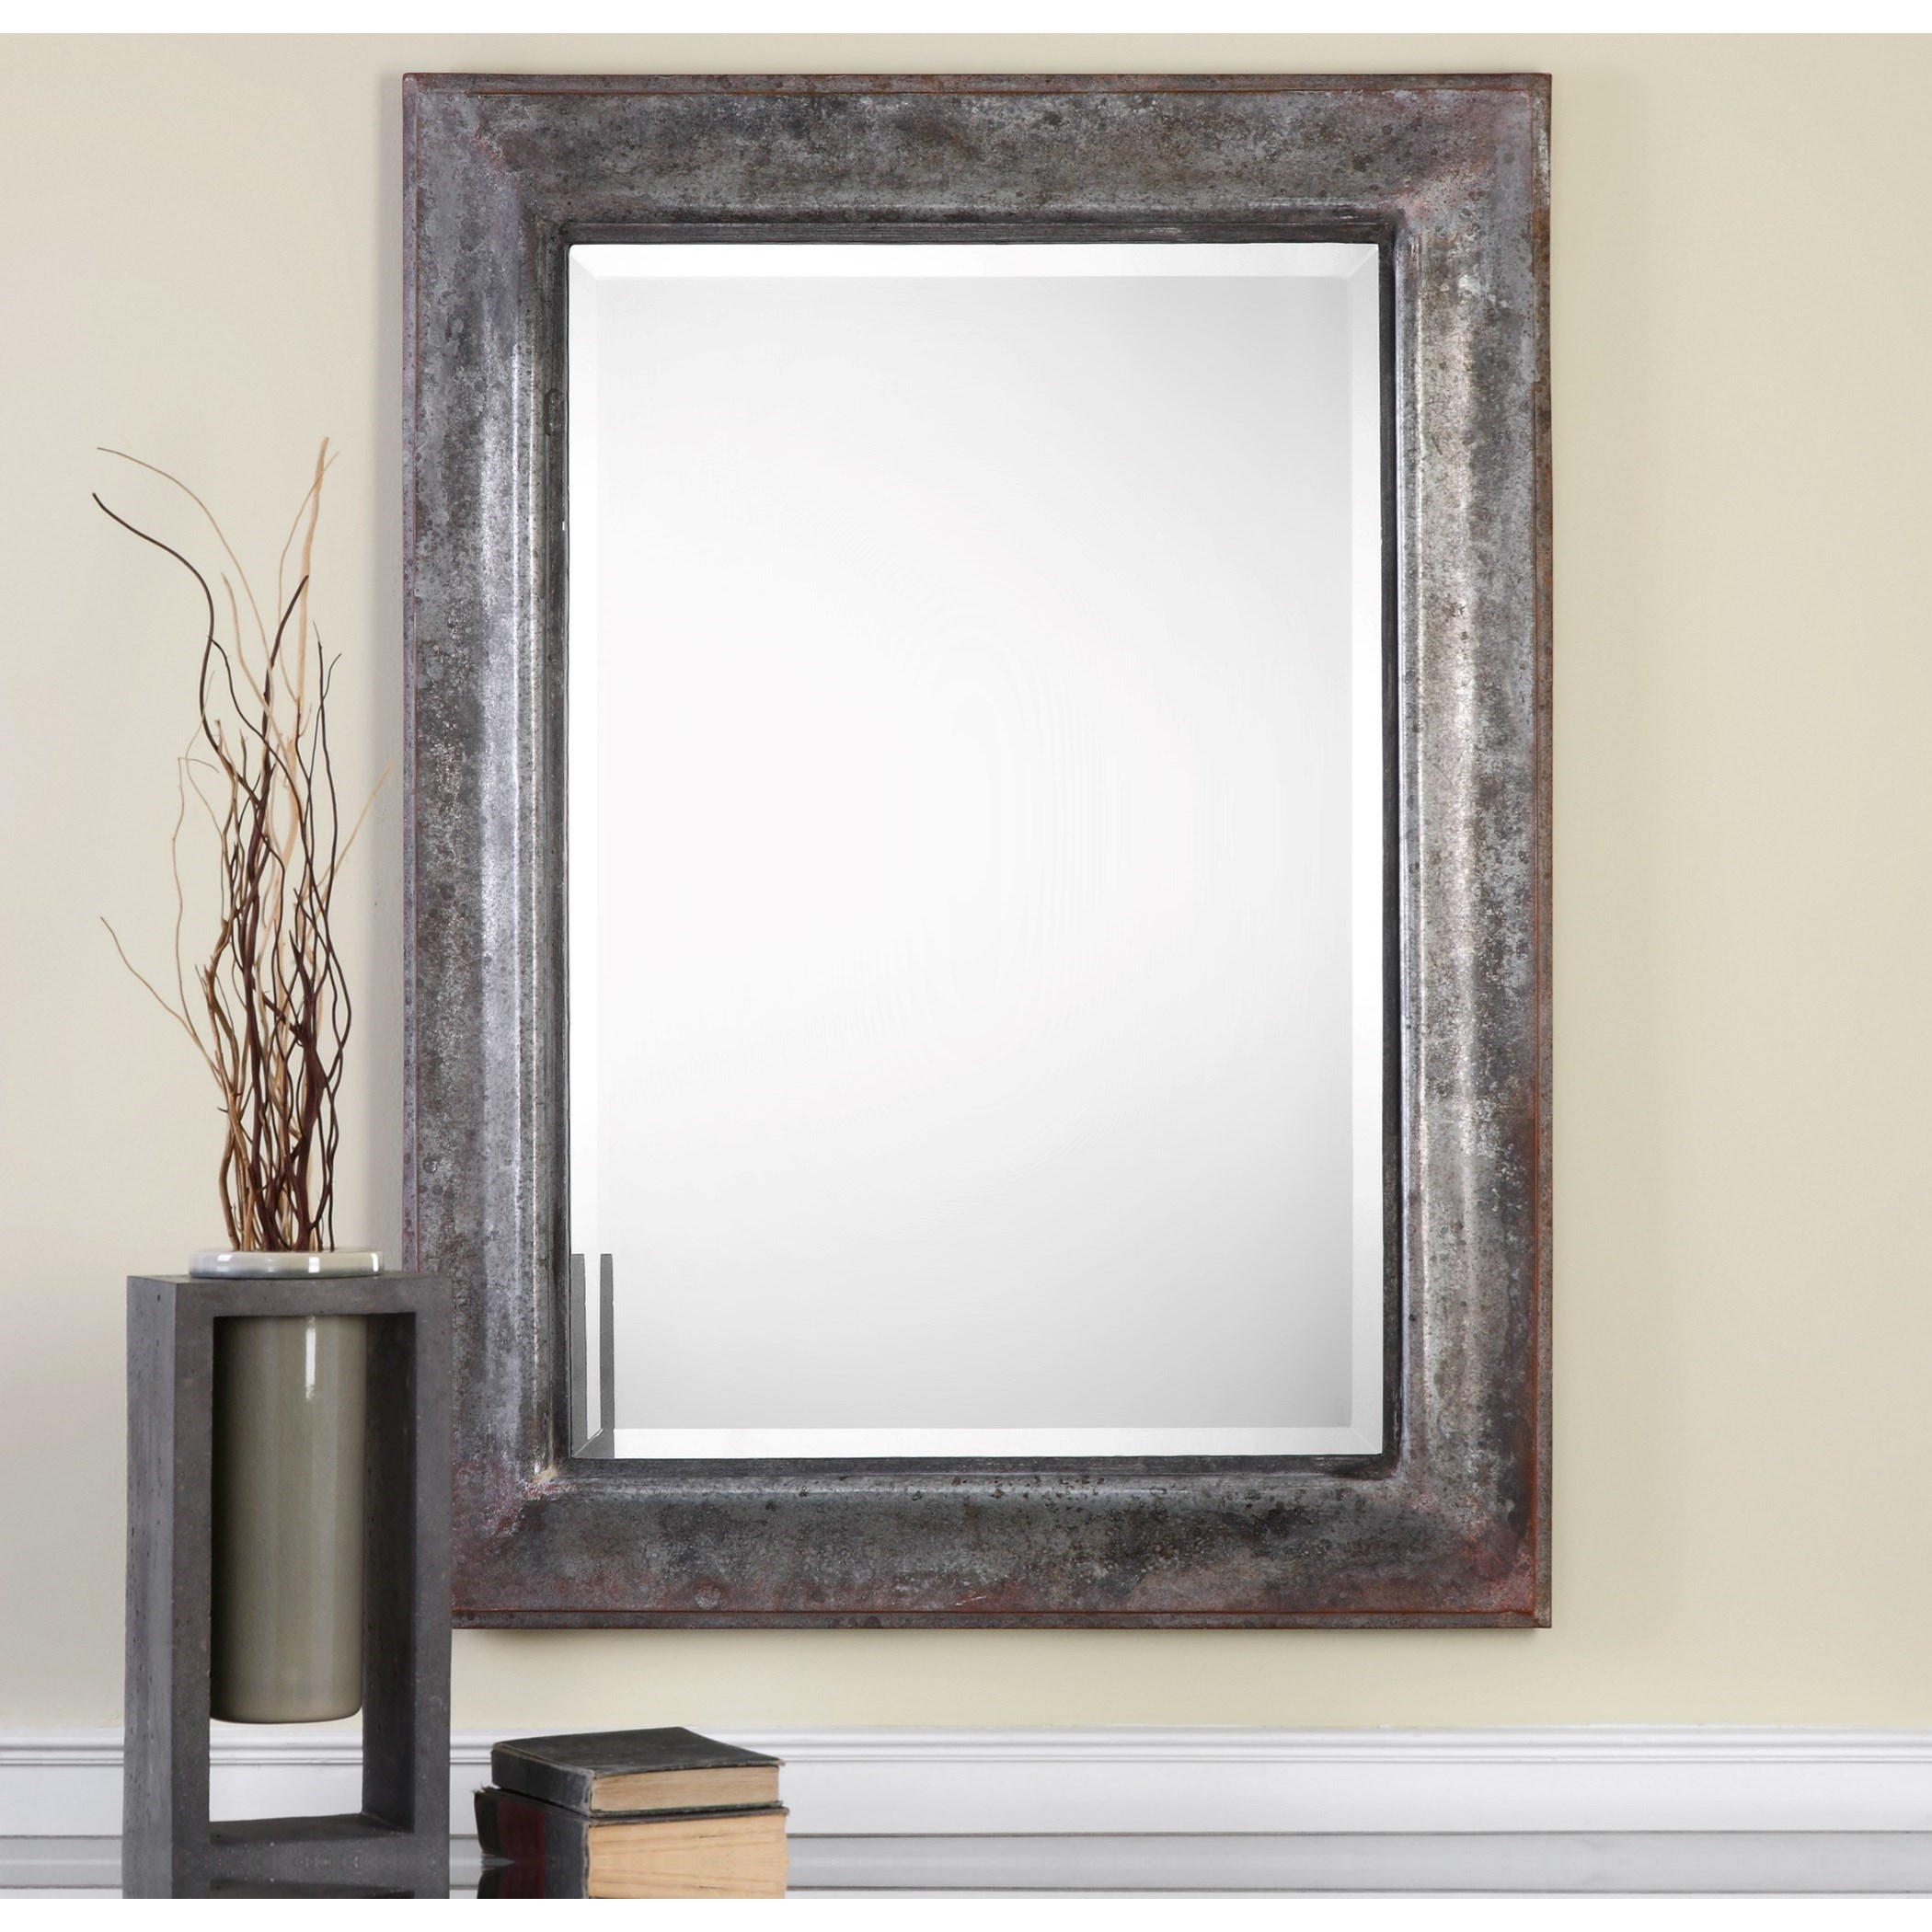 Uttermost mirrors 09127 agathon aged stone gray mirror for Long grey wall mirror